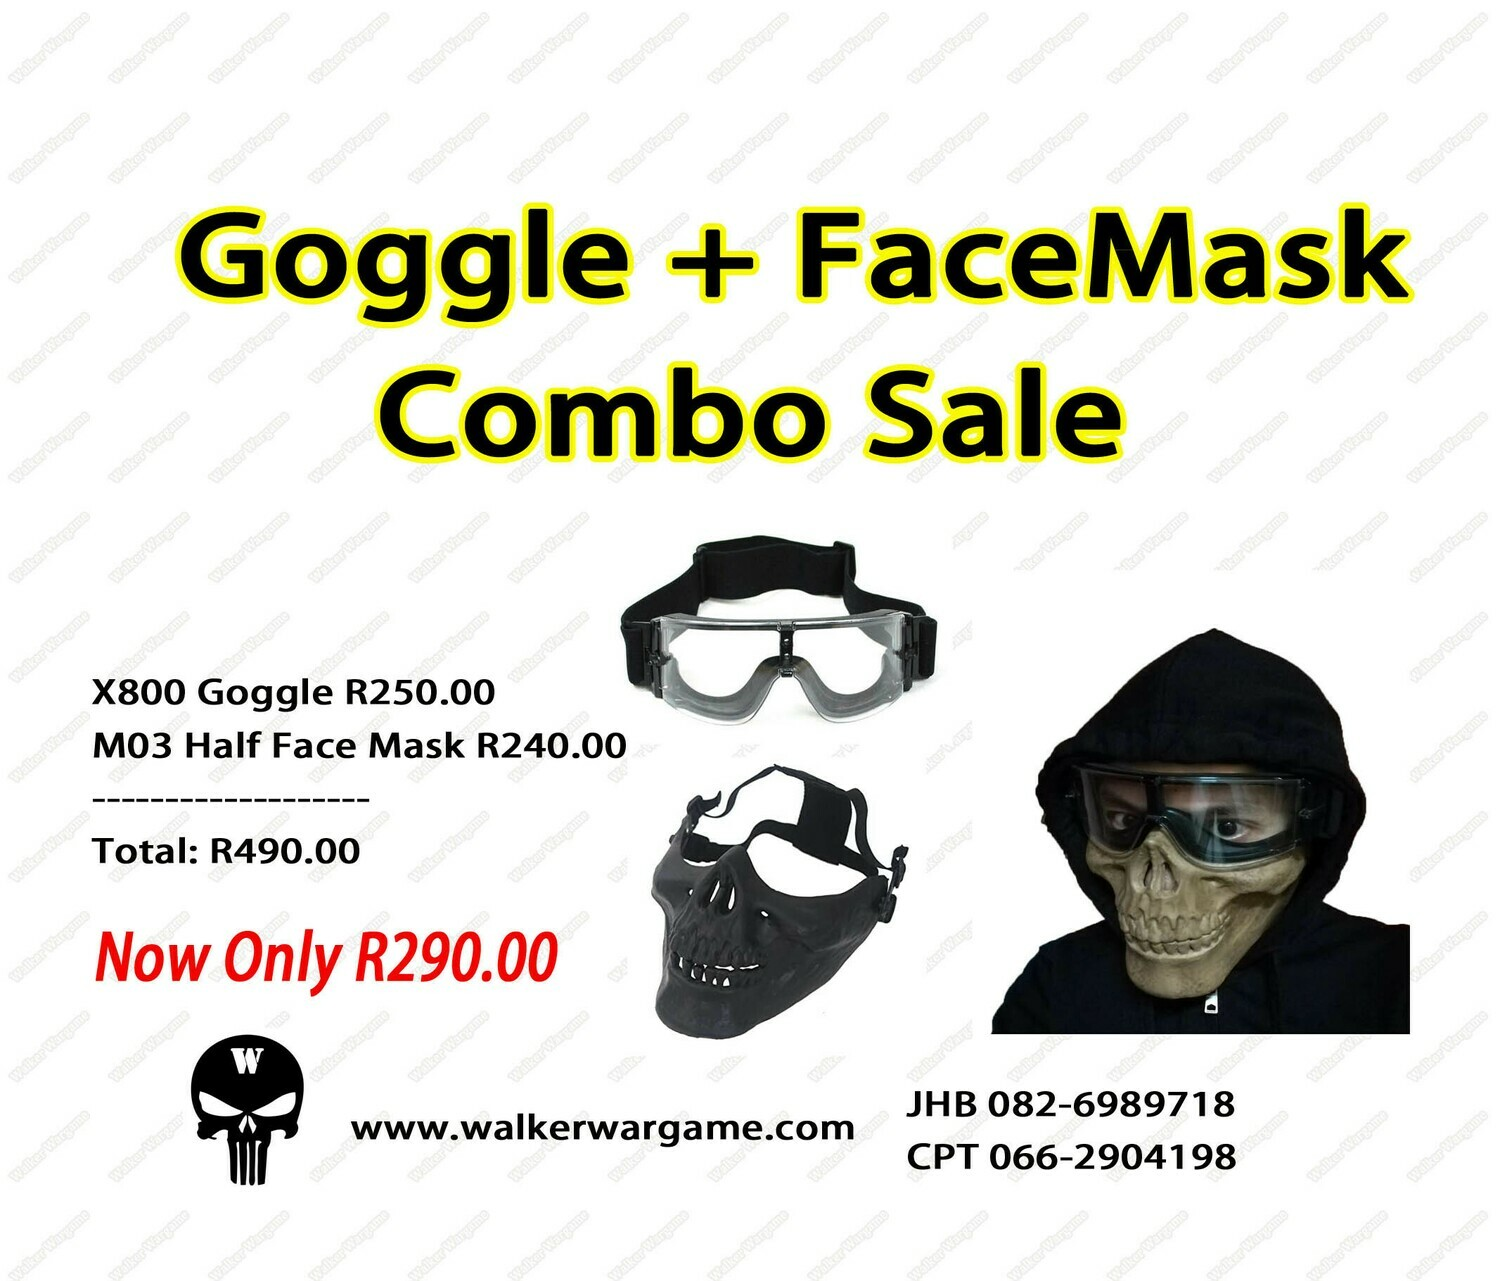 Goggle + Facemask Combo Sale - Save R200.00